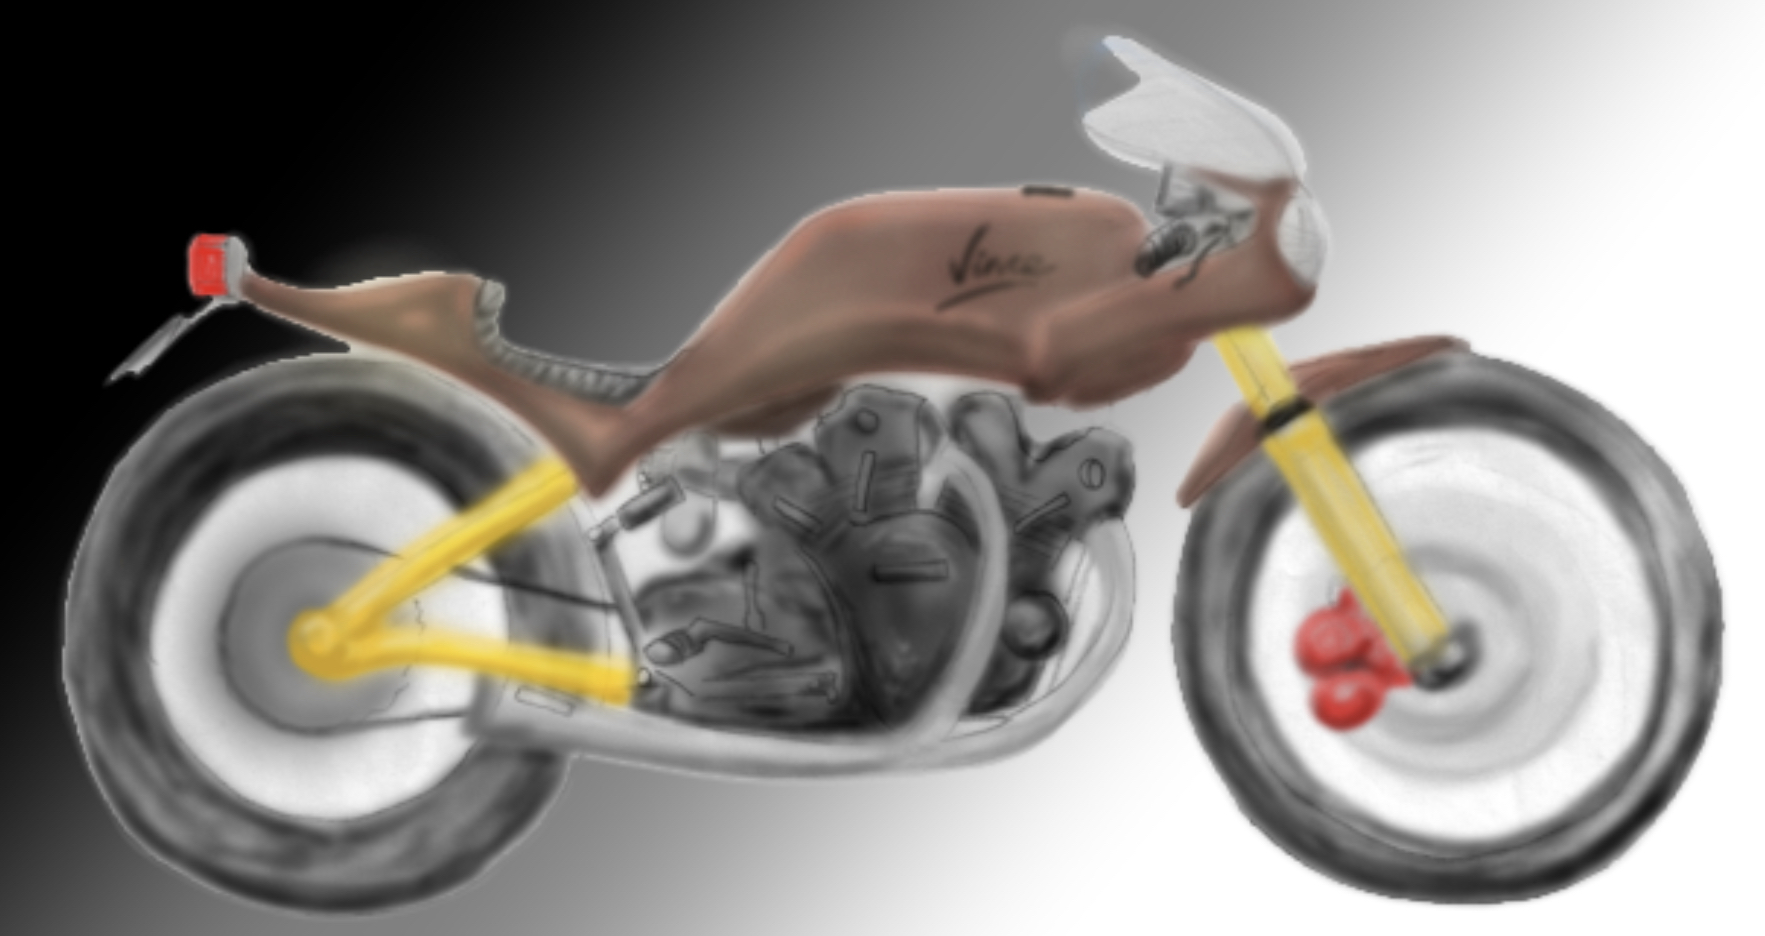 A pencil sketch of the Vincent motorbike concept, a sports style motorbike with a Vincent engine and large rear tyre